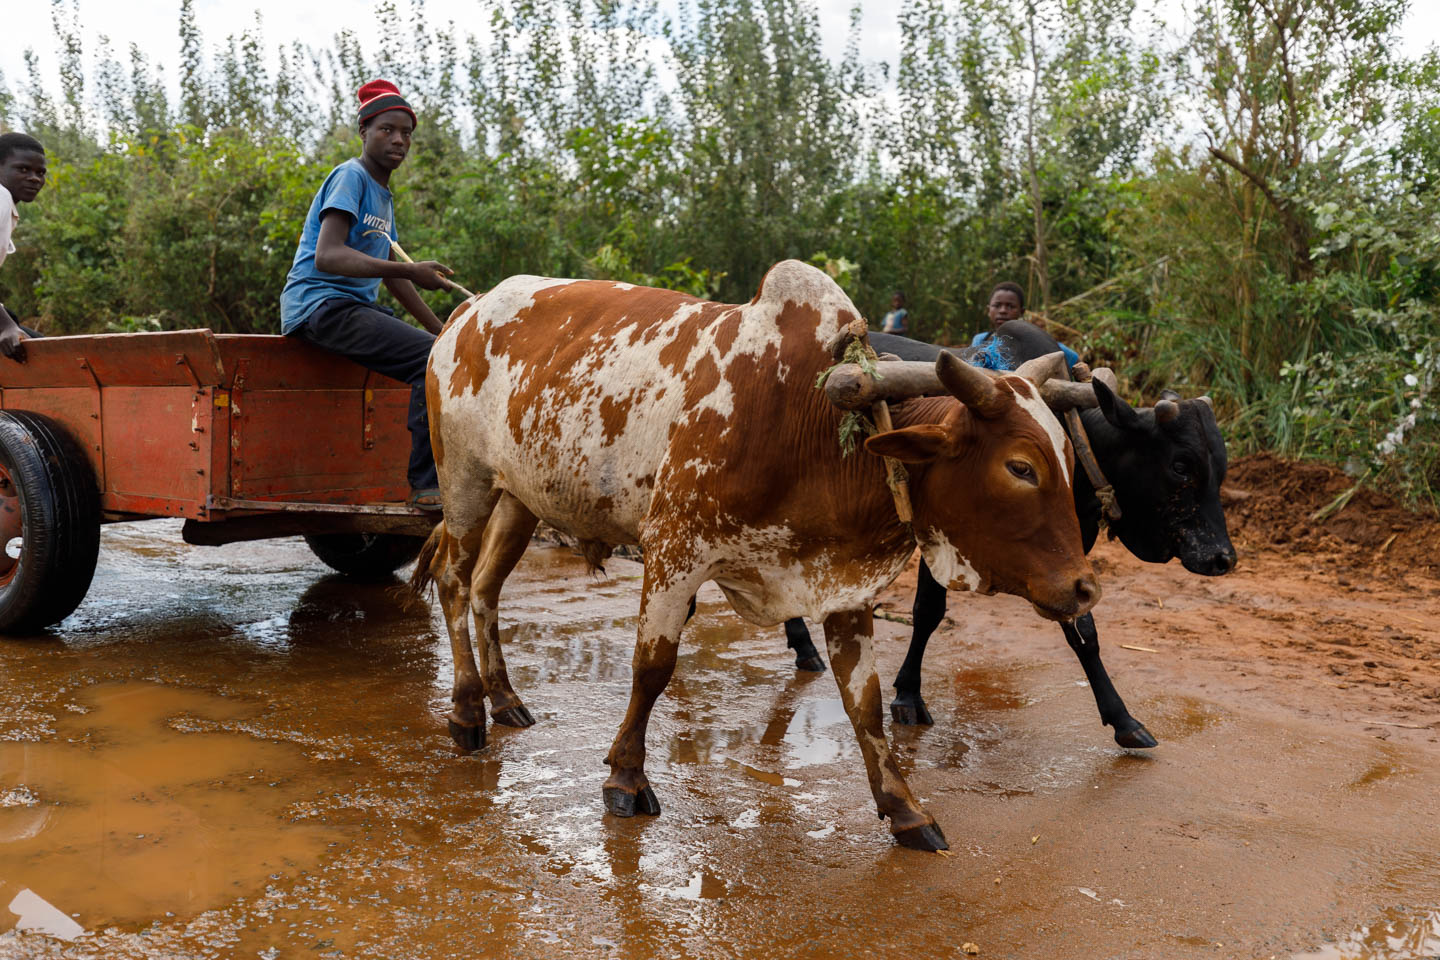 Transportation with cattle in Malawi